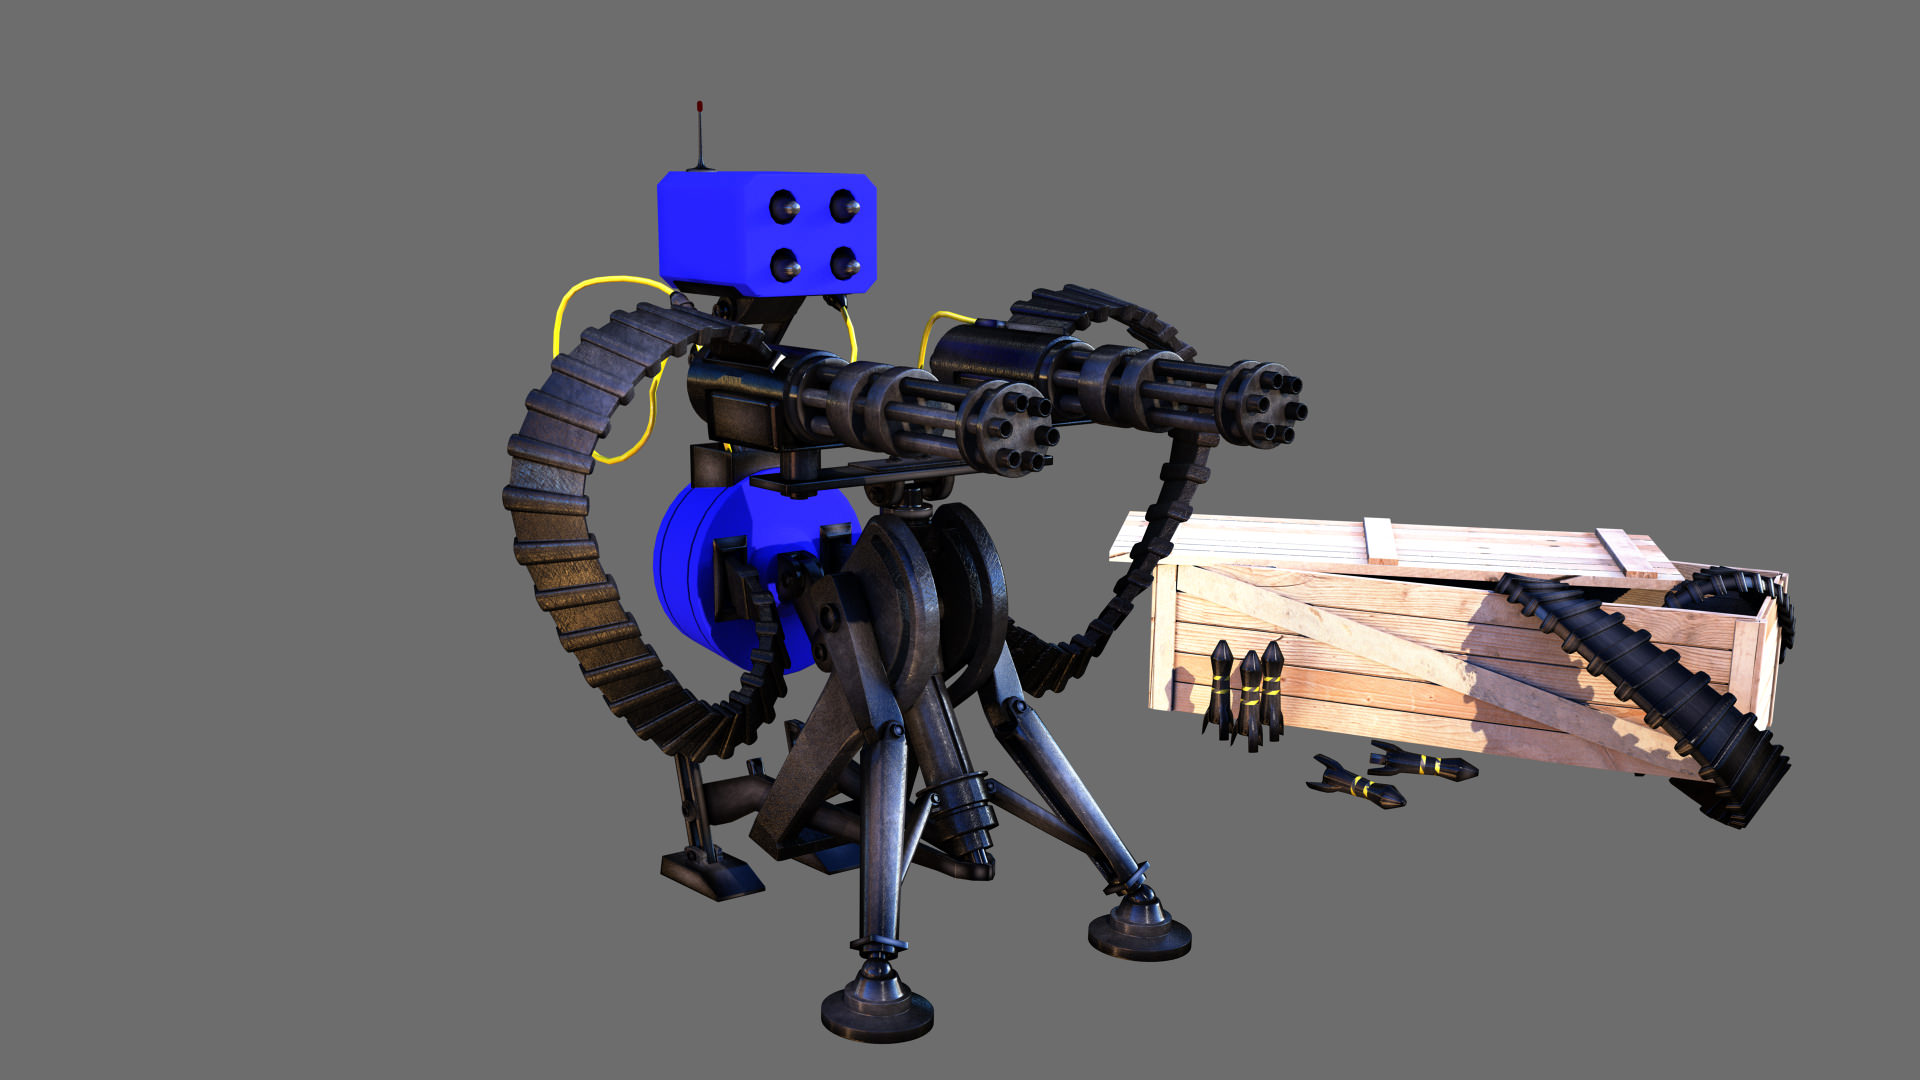 Tf2 Sentry Gun Model Tf2 Sentry Gun With Munition